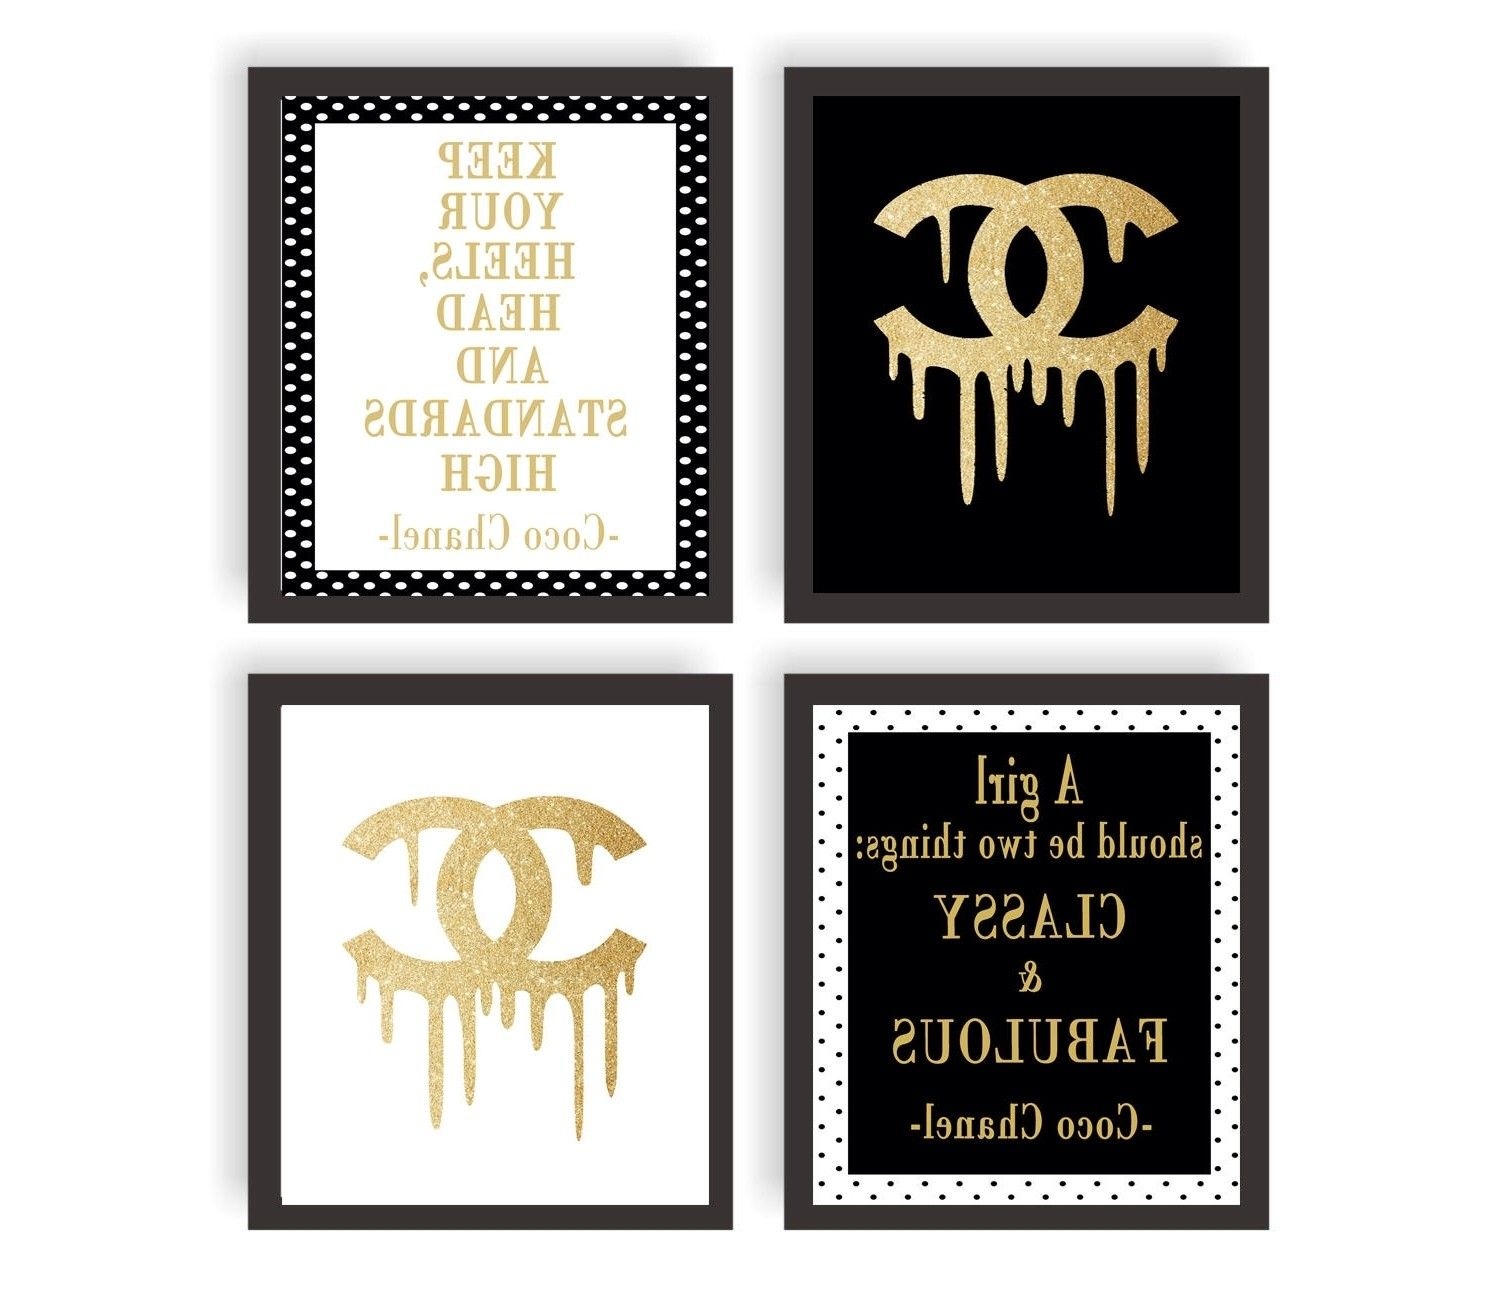 Chanel Label Printable 15 Collection Of Coco Chanel Quotes Framed Wall Art Popisgrzegorz Com Chanel Wall Art Wall Art Quotes Diy Wall Art Quotes